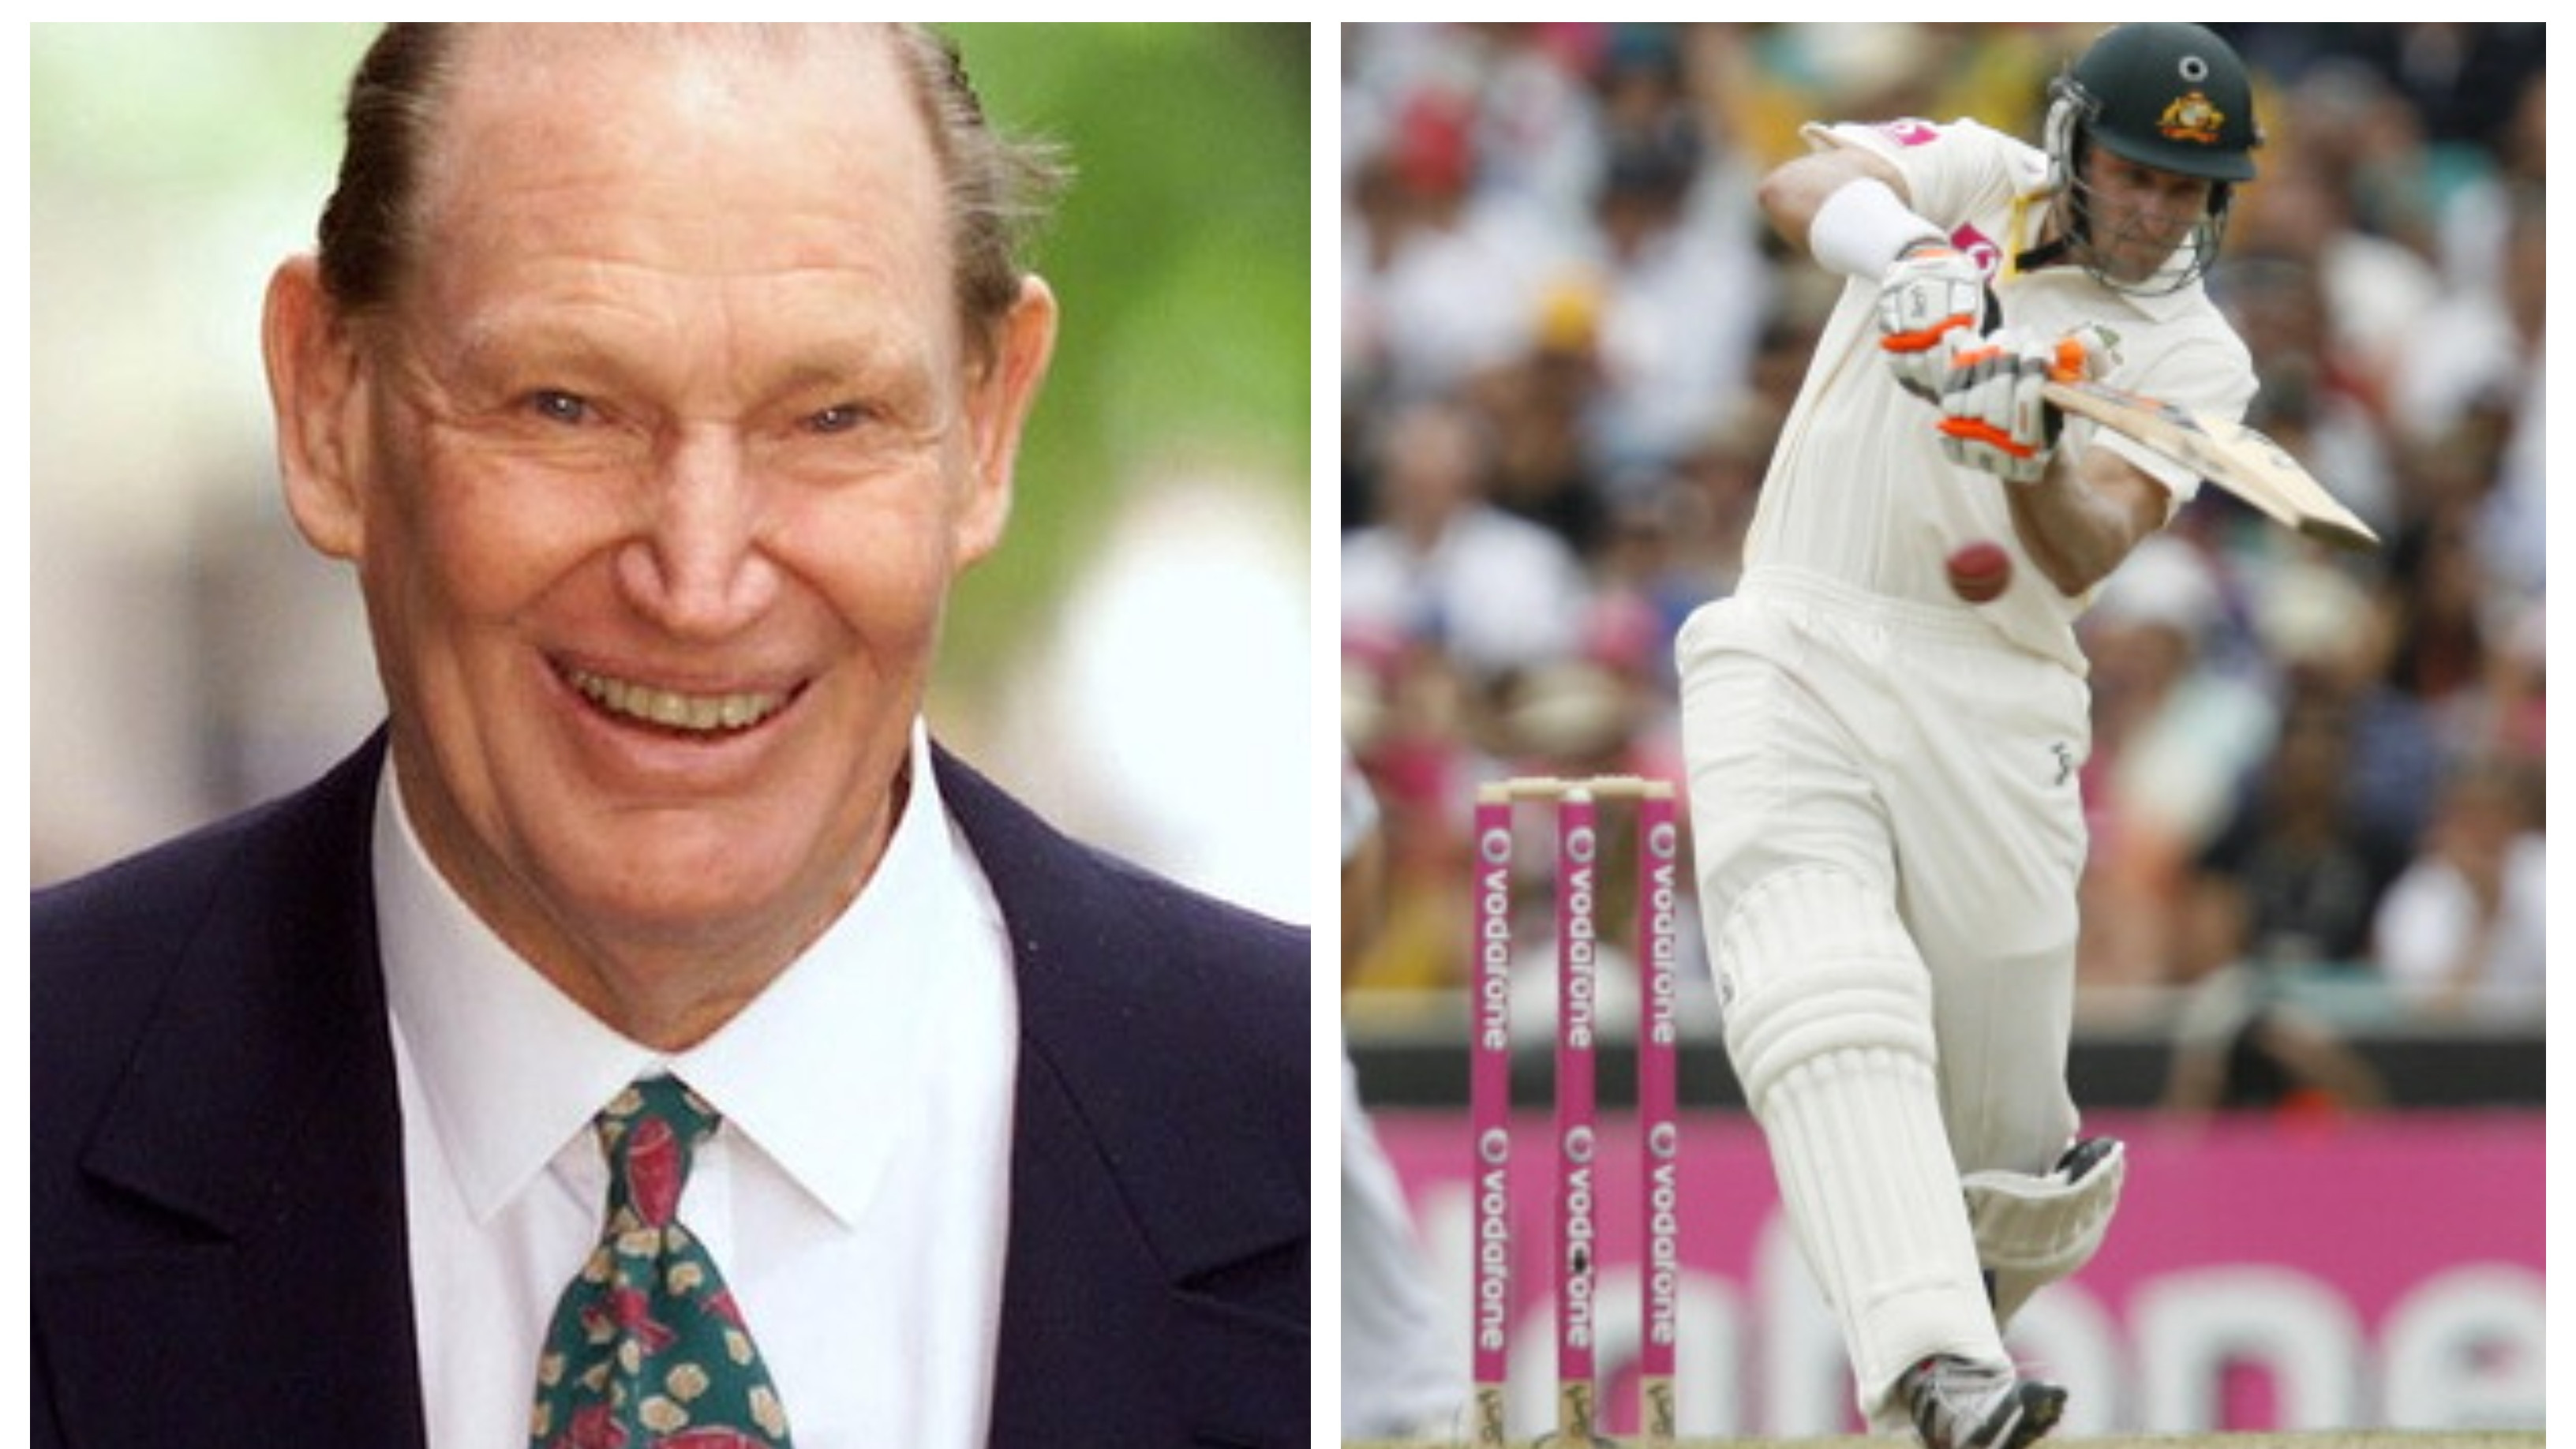 Kerry Packer demanded Mike Hussey's selection in the 2005 Ashes